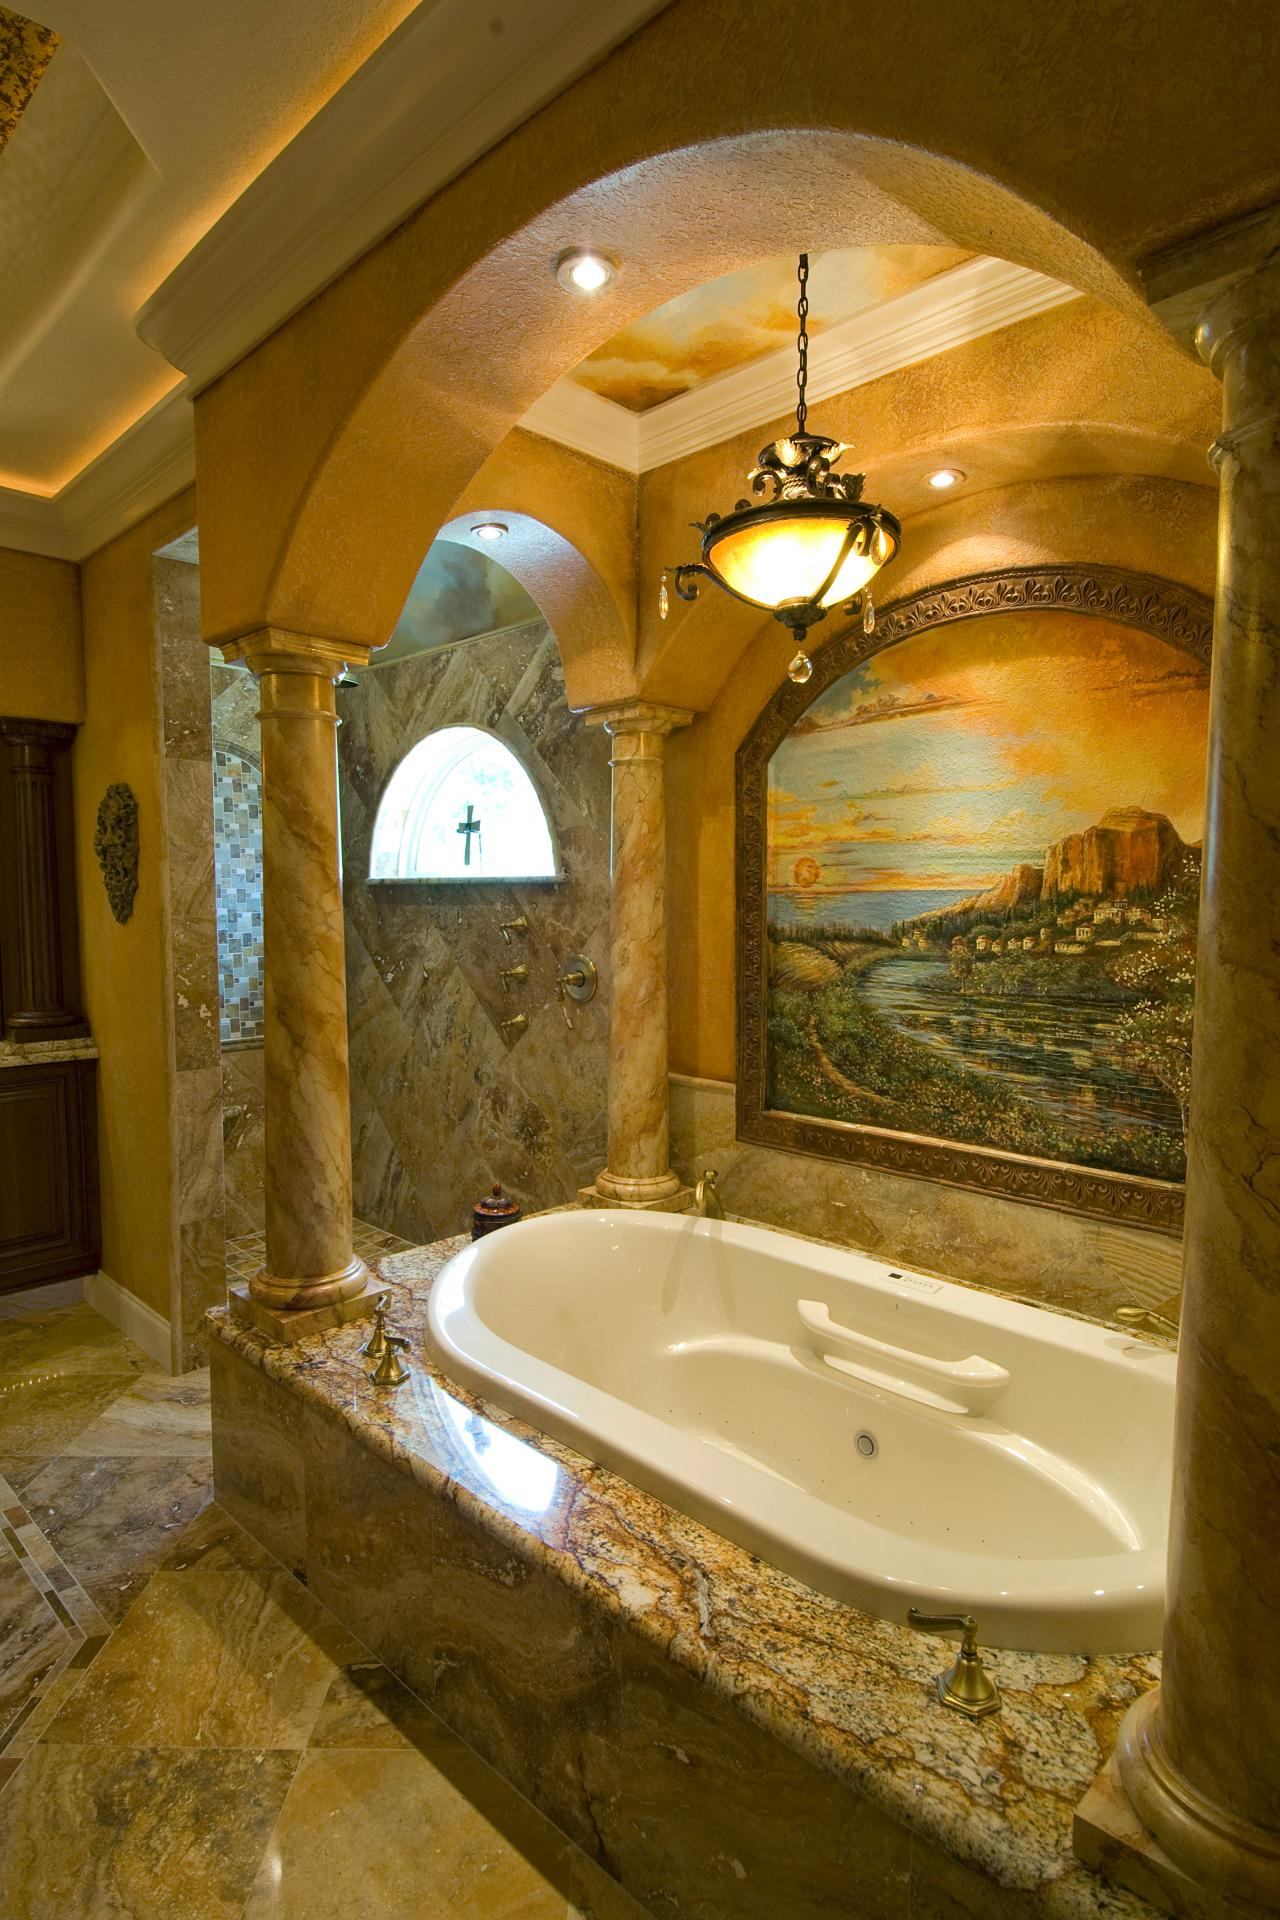 If you are looking for inexpensive bedroom decorating ideas, check out these great pieces for under $100. 25 Mediterranean Bathroom Design Ideas - Decoration Love